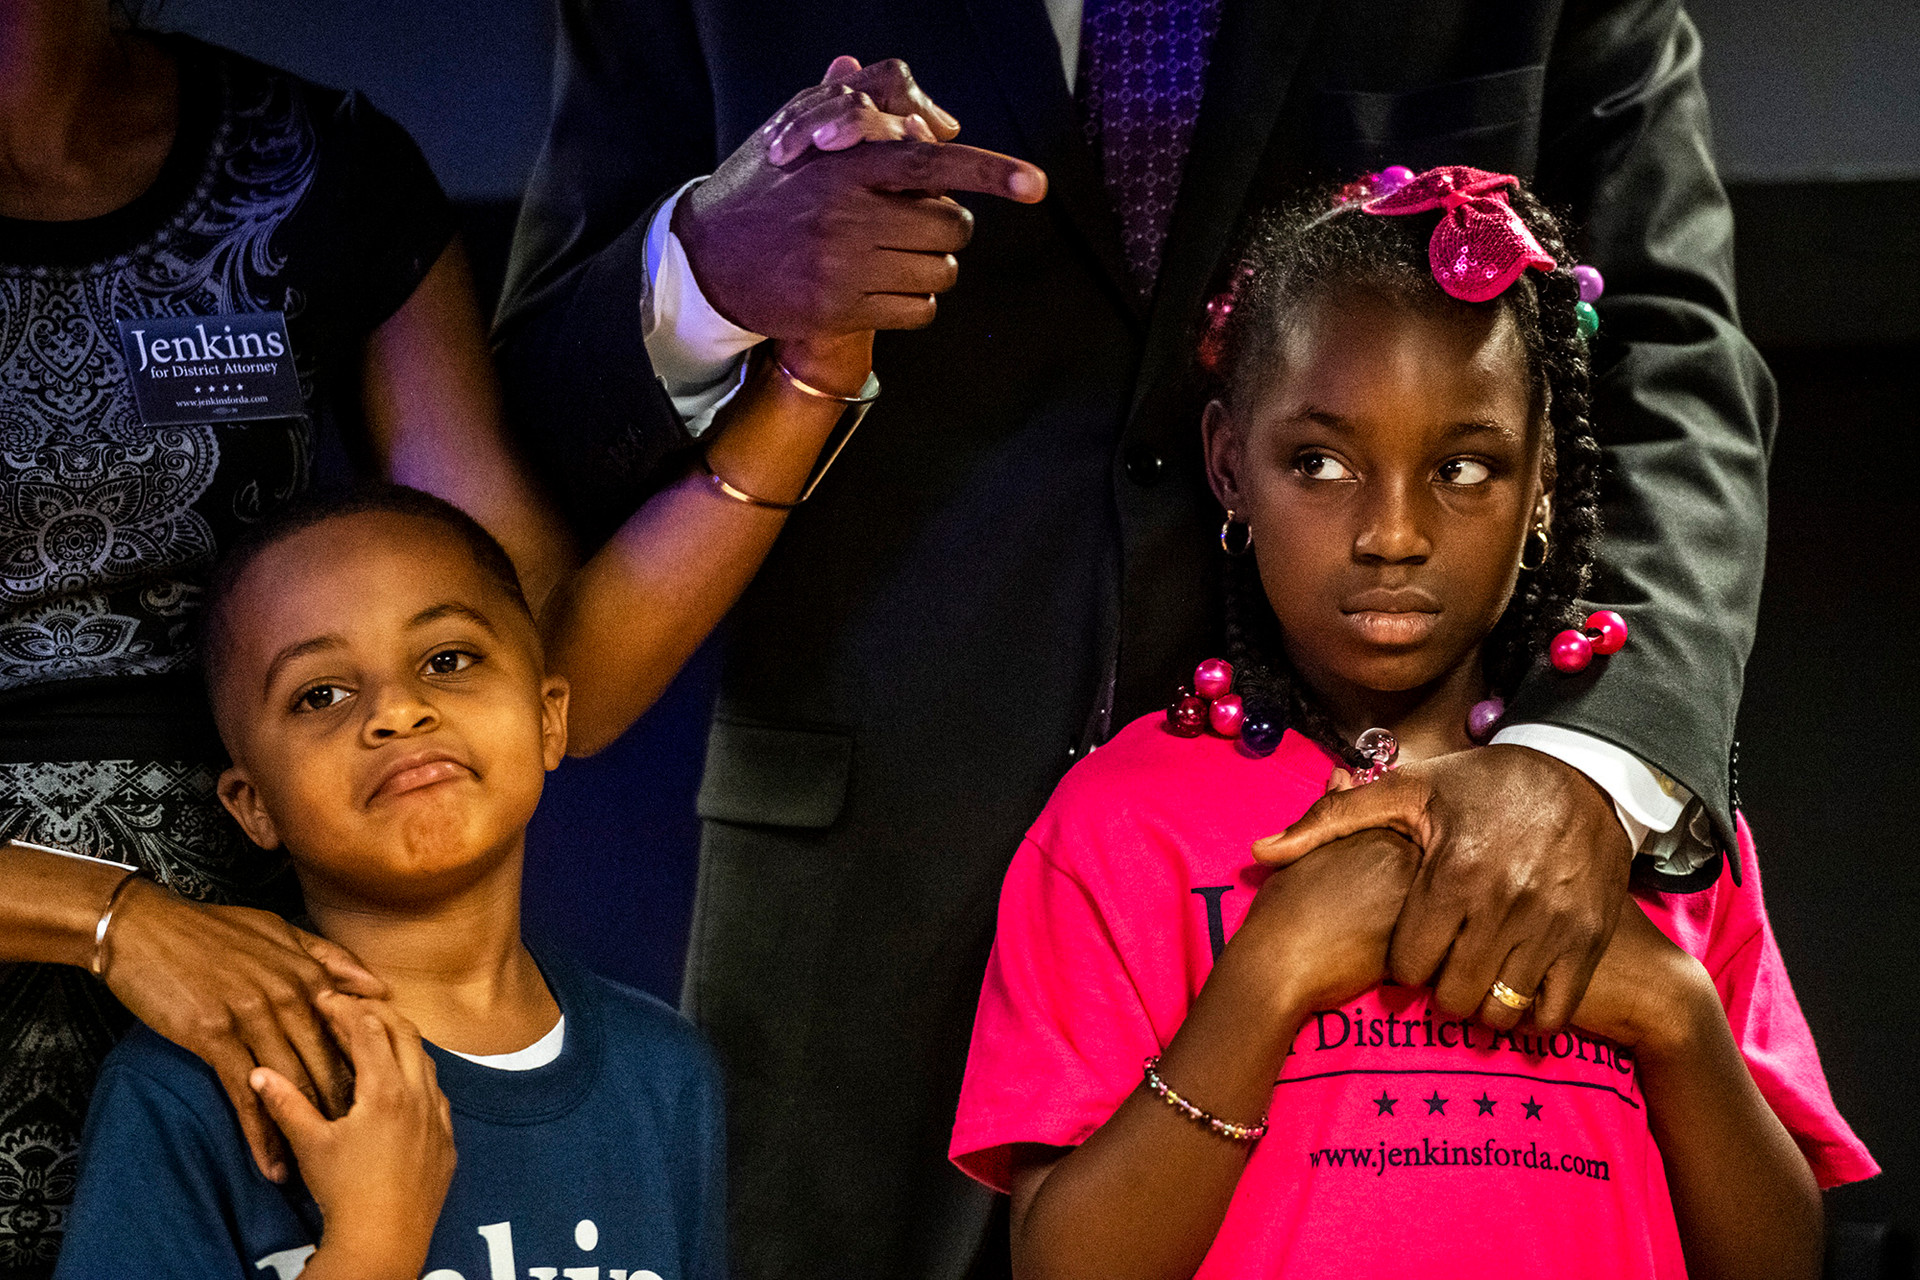 Turahn Jenkin's kids Turahn Jenkins Jr., left, and Legend Jenkins, right, listen as their father gives his concession speech to supporters at his election night party, Tuesday, May 21, 2019, at Sugar and Smoke in Bloomfield. Turahn Jenkins candidate for Allegheny County District Attorney was challenging incumbent Stephen A. Zappala Jr. who had not faced a primary opponent since 1999.